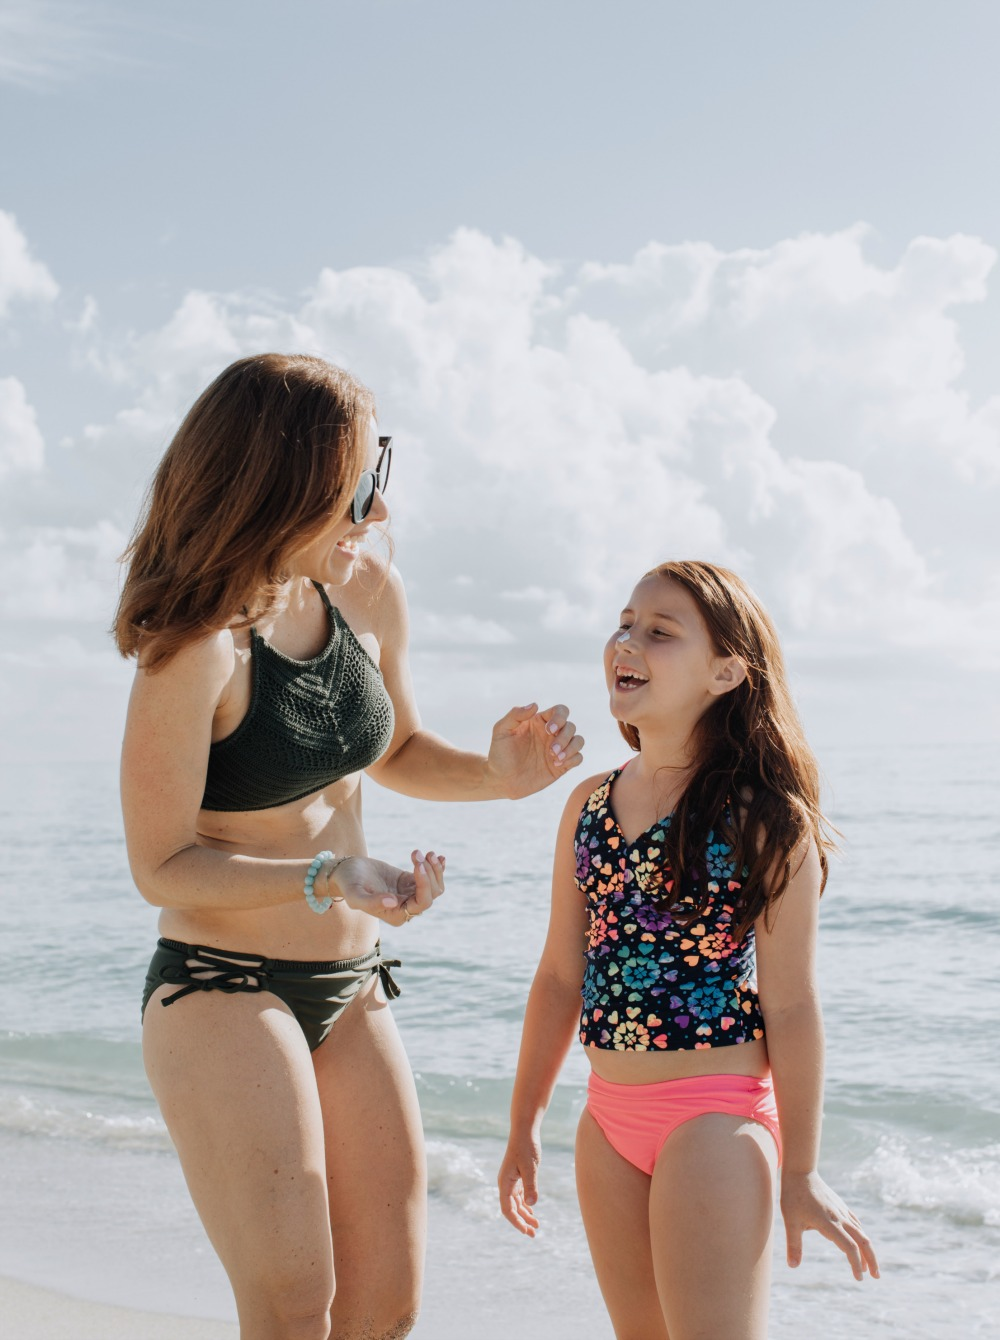 FUn ideas for a mother daughter beach day